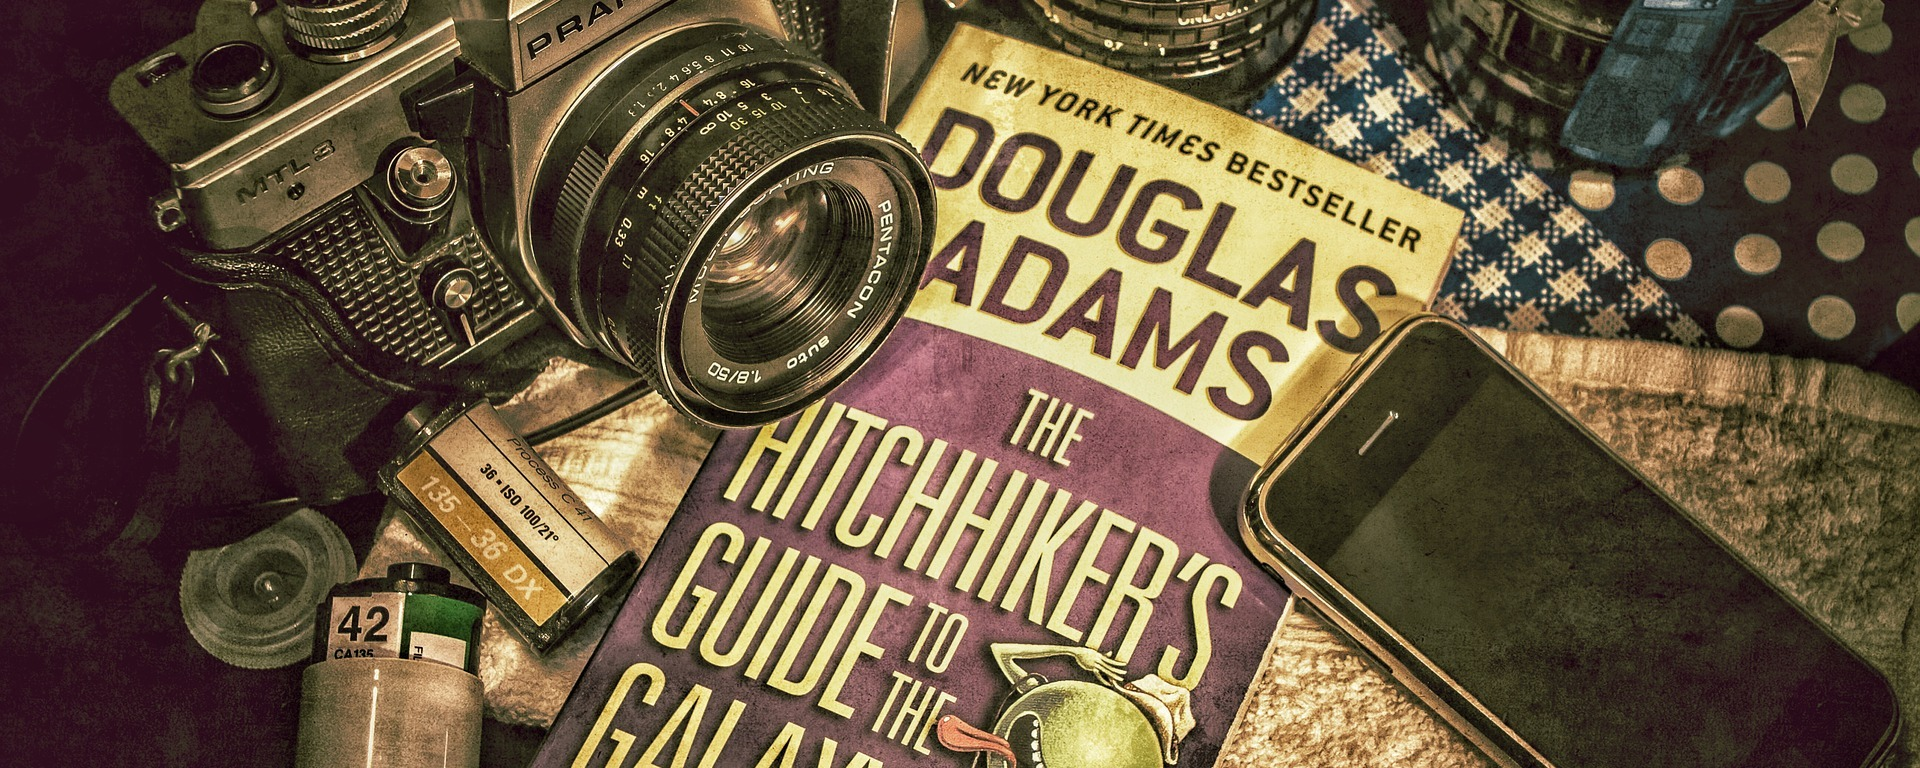 douglas adams,hitchhikers,guide,galaxy,analog,film,photography,iphone,vintage,fisheye,towel,book,tea,cup,relaxation,hot,table,prepared,morning,DON CHARISMA